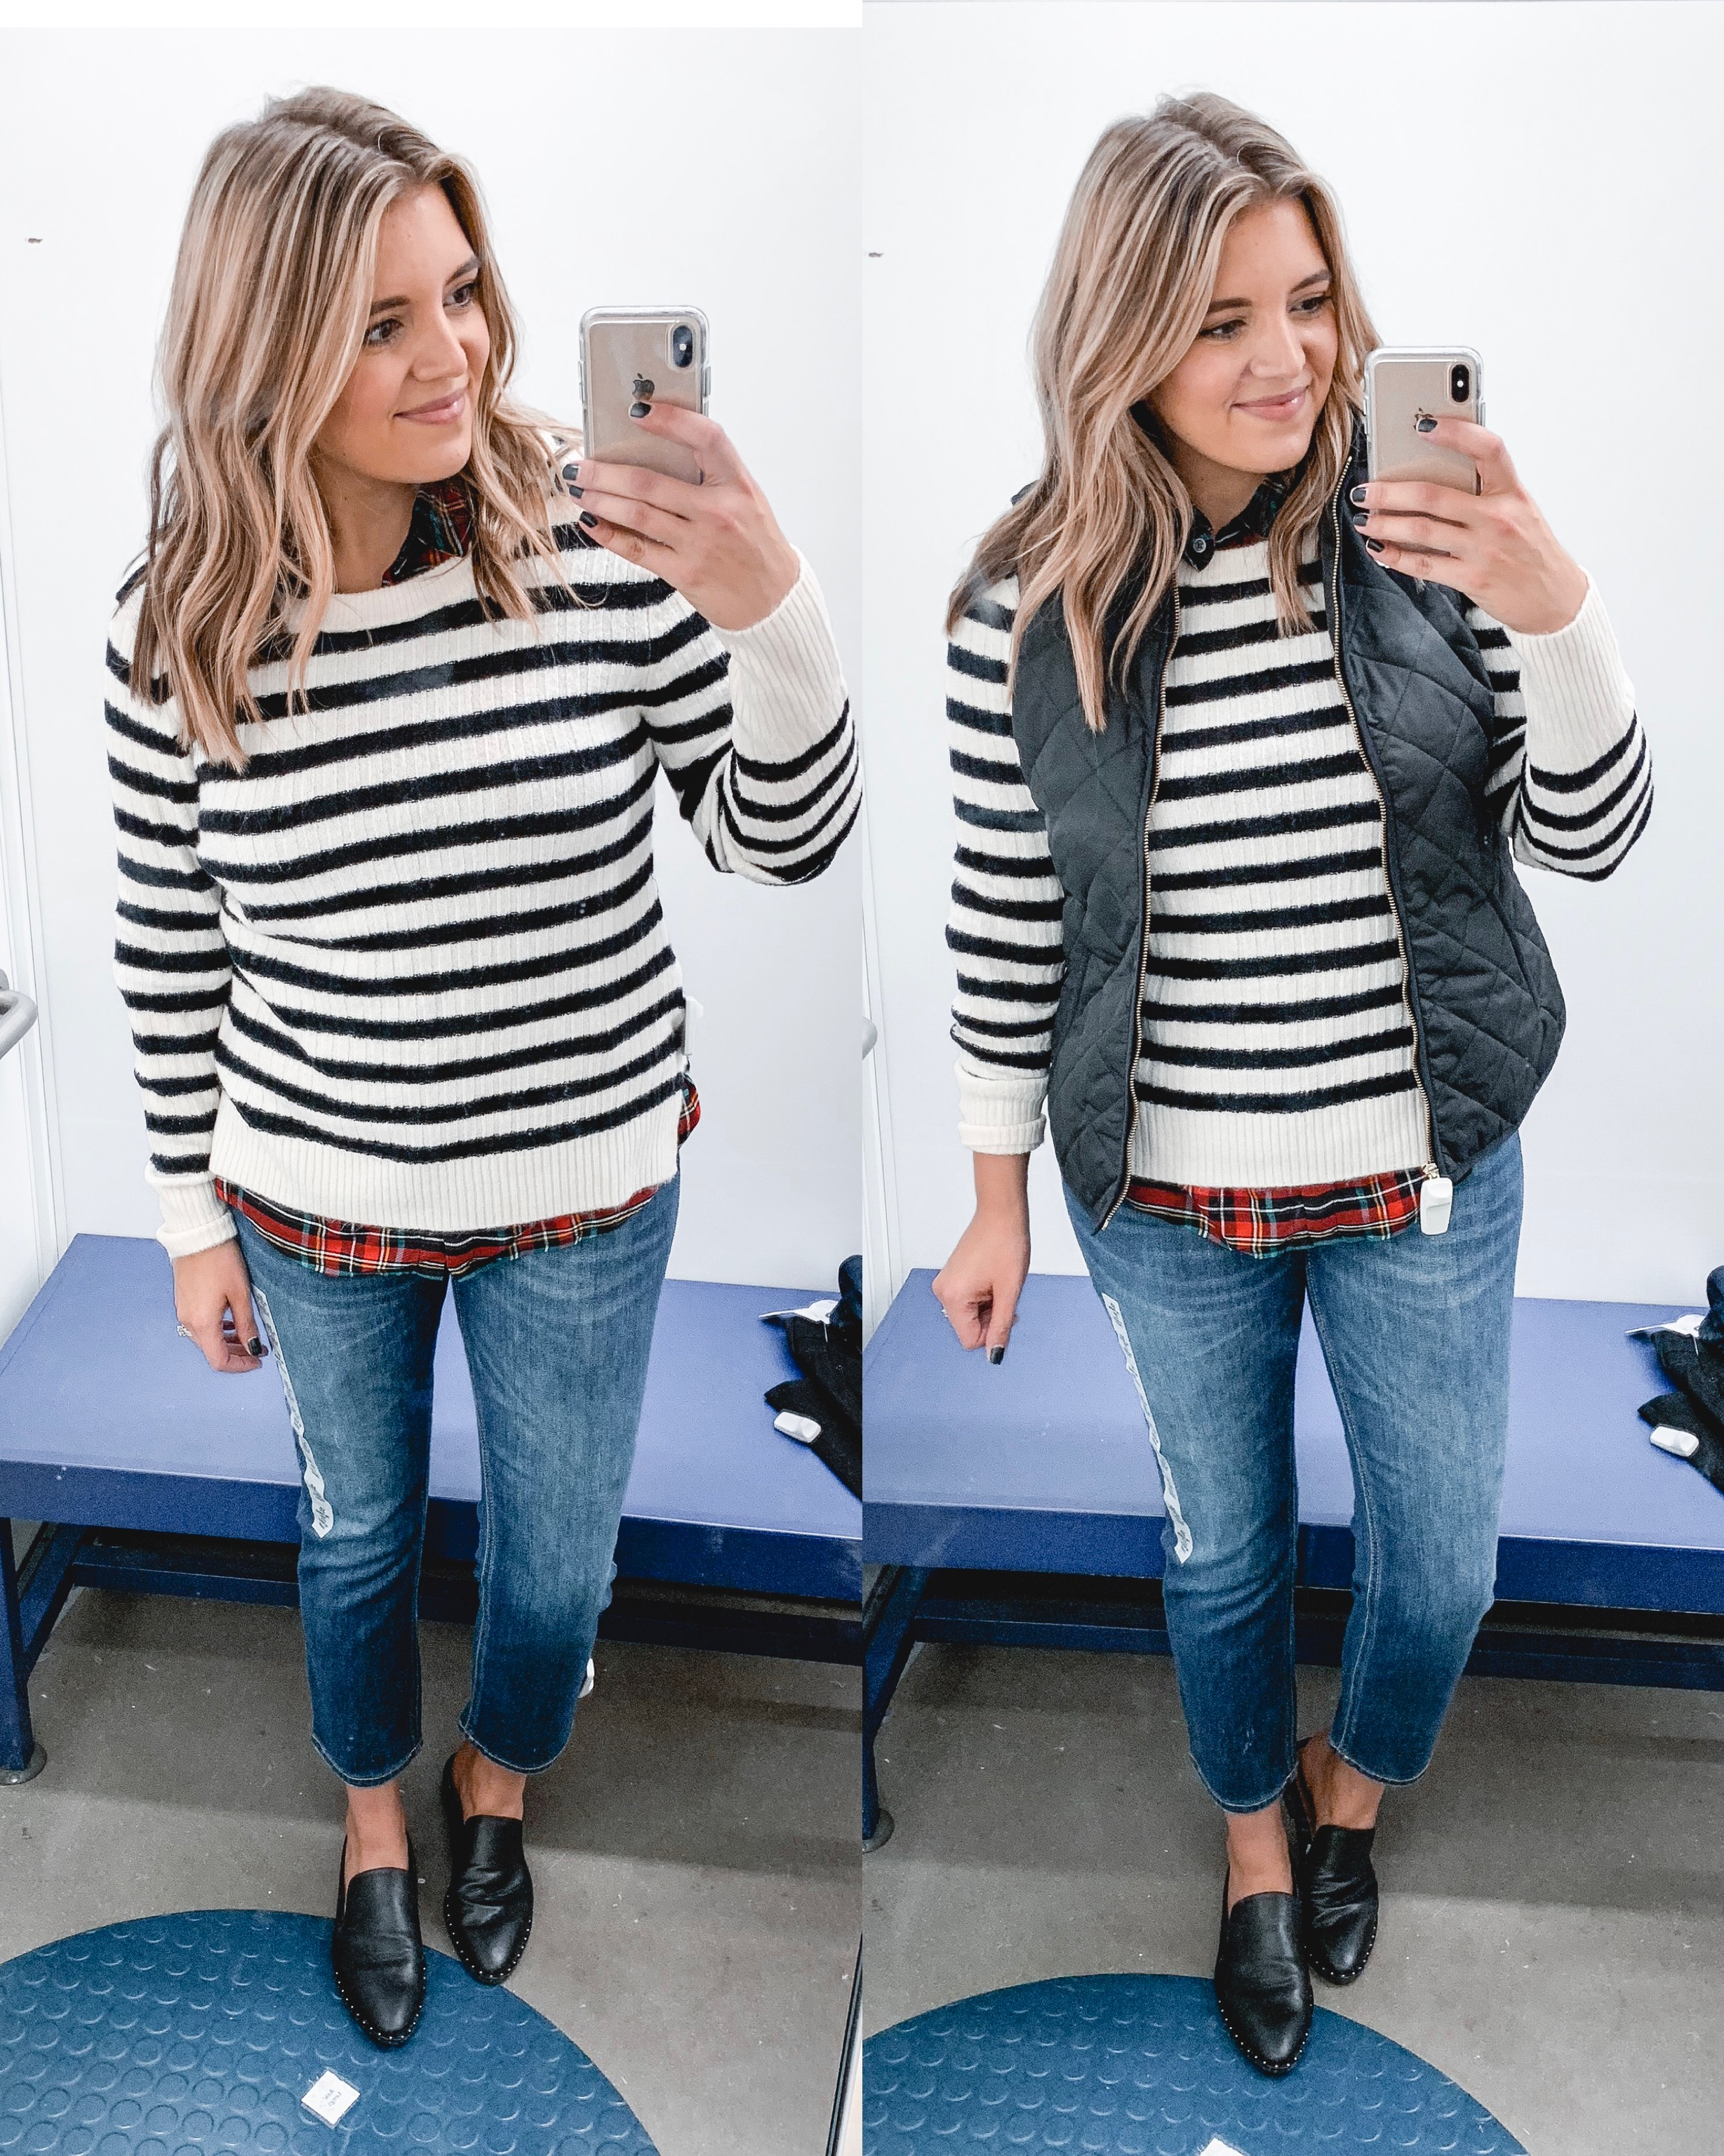 old navy try on - over 25 old navy winter outfits with fit and sizing details for each item! bylaurenm.com